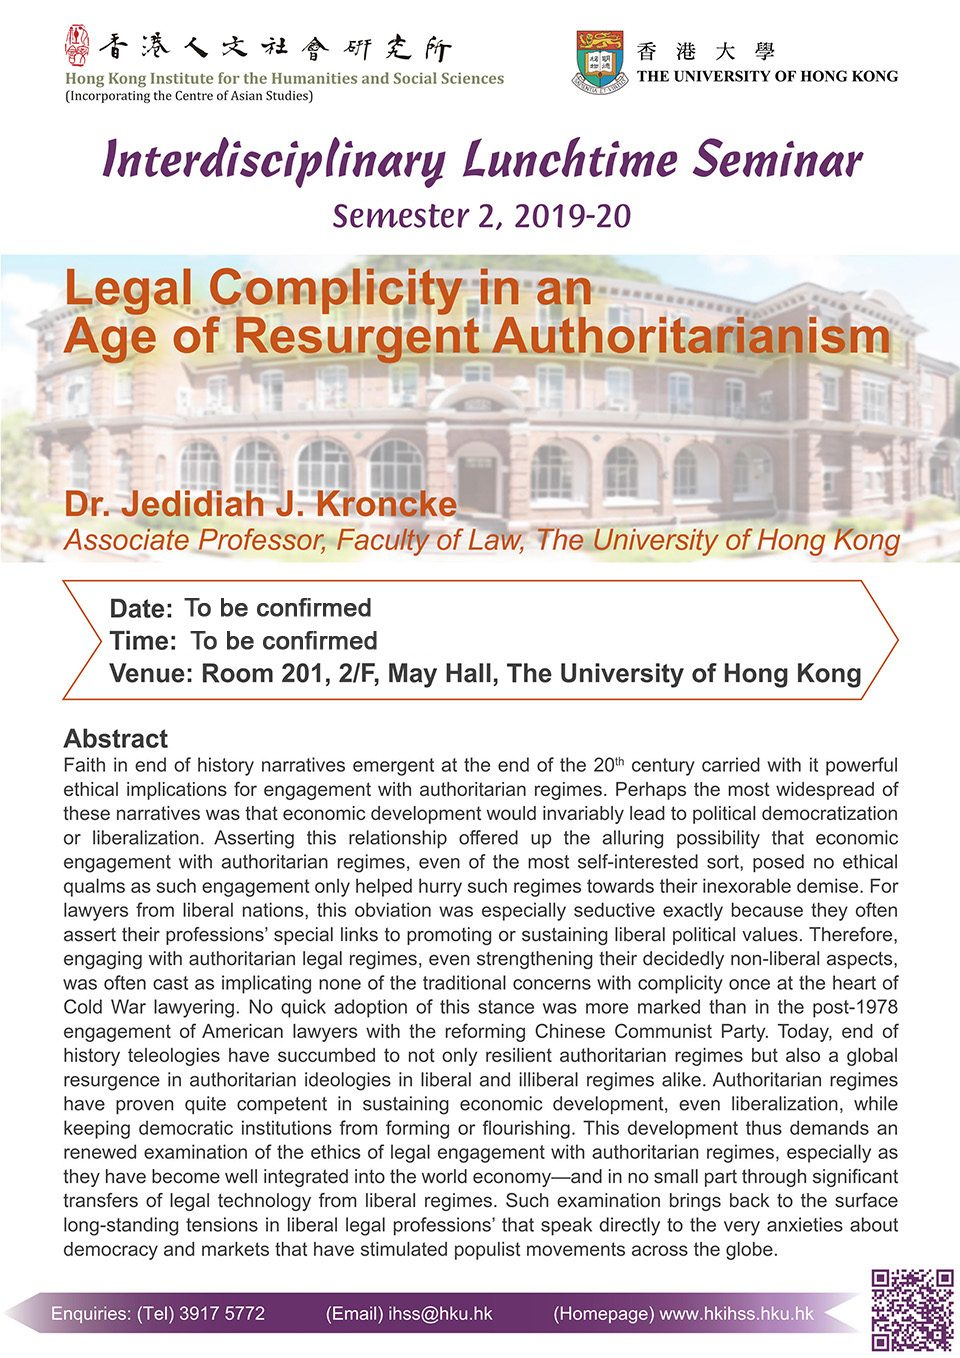 "Interdisciplinary Lunchtime Seminar on ""Legal Complicity in an Age of Resurgent Authoritarianism"" by Dr. Jedidiah J. Kroncke"